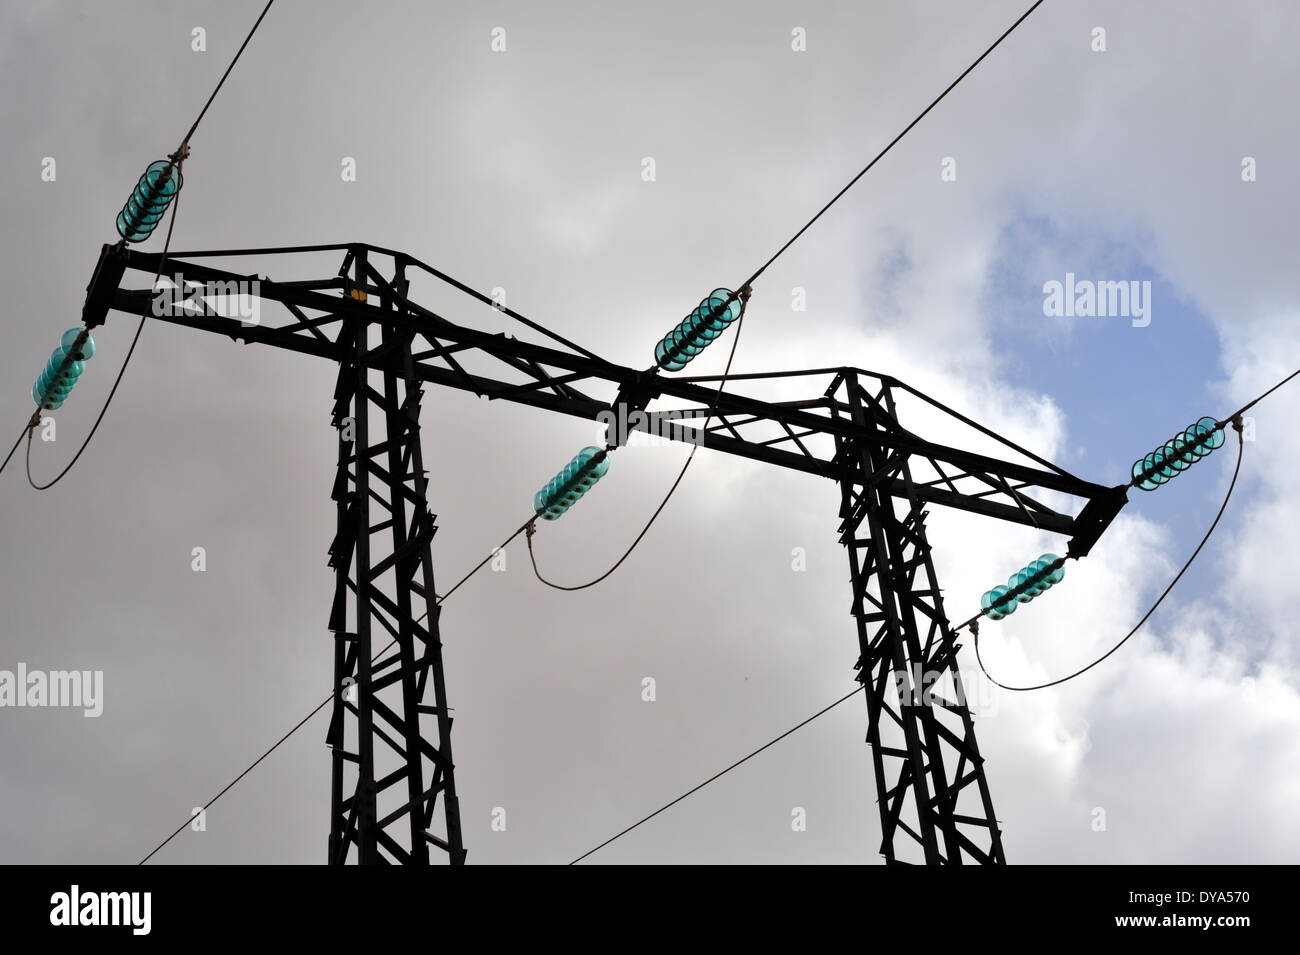 High voltage three phase electrical power lines with glass insulators at top of pylon - Stock Image